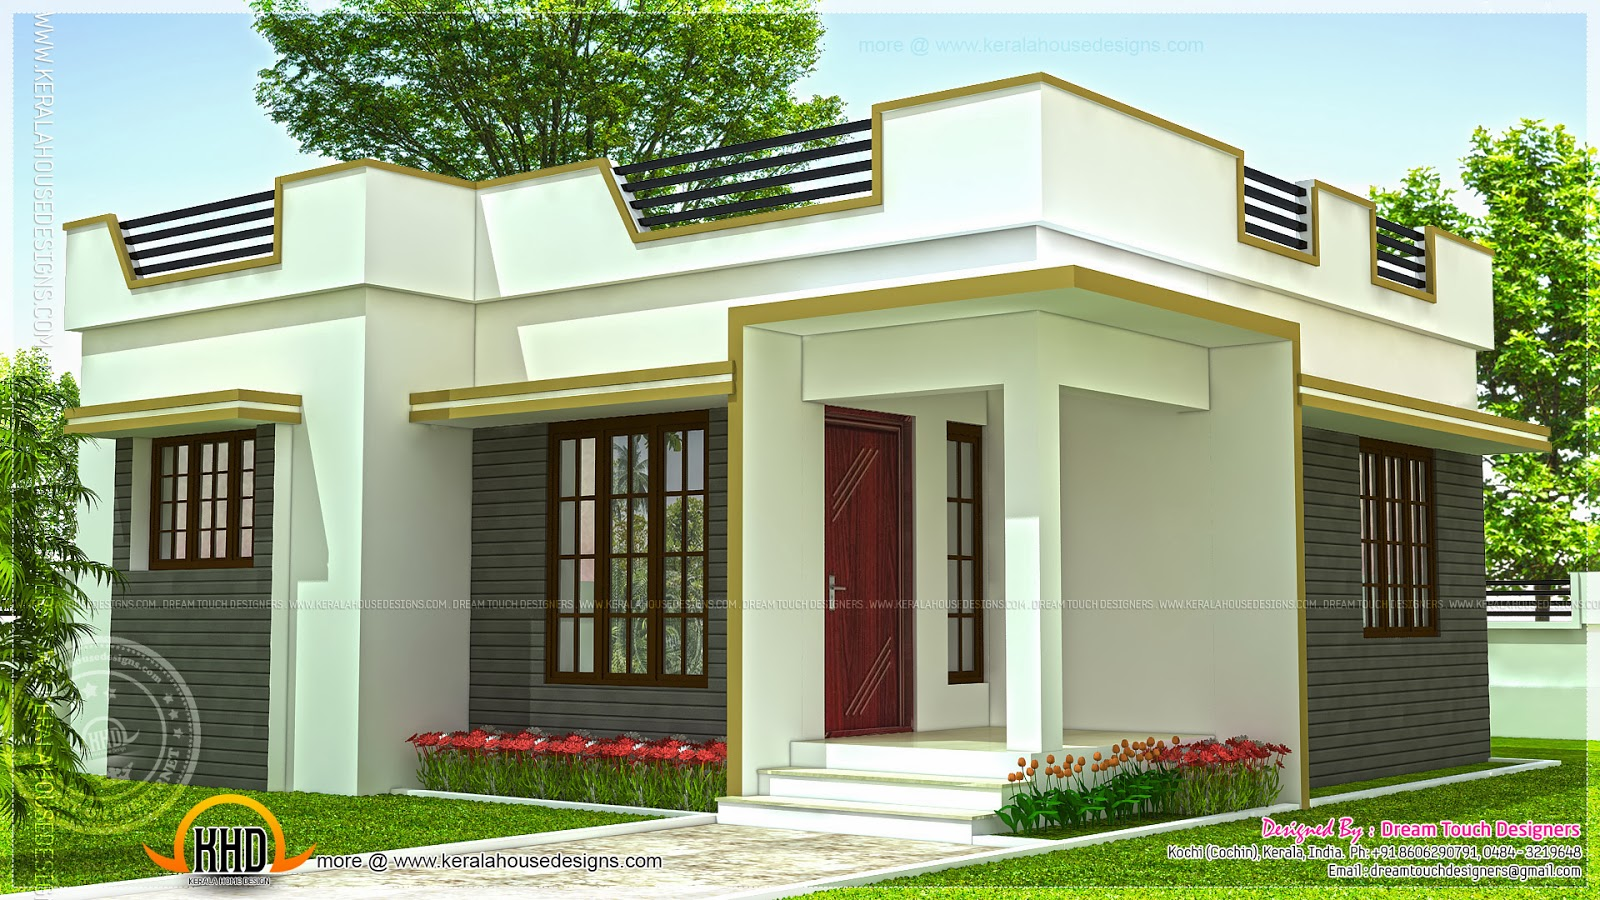 Thoughtskoto for House plans with photos in kerala style